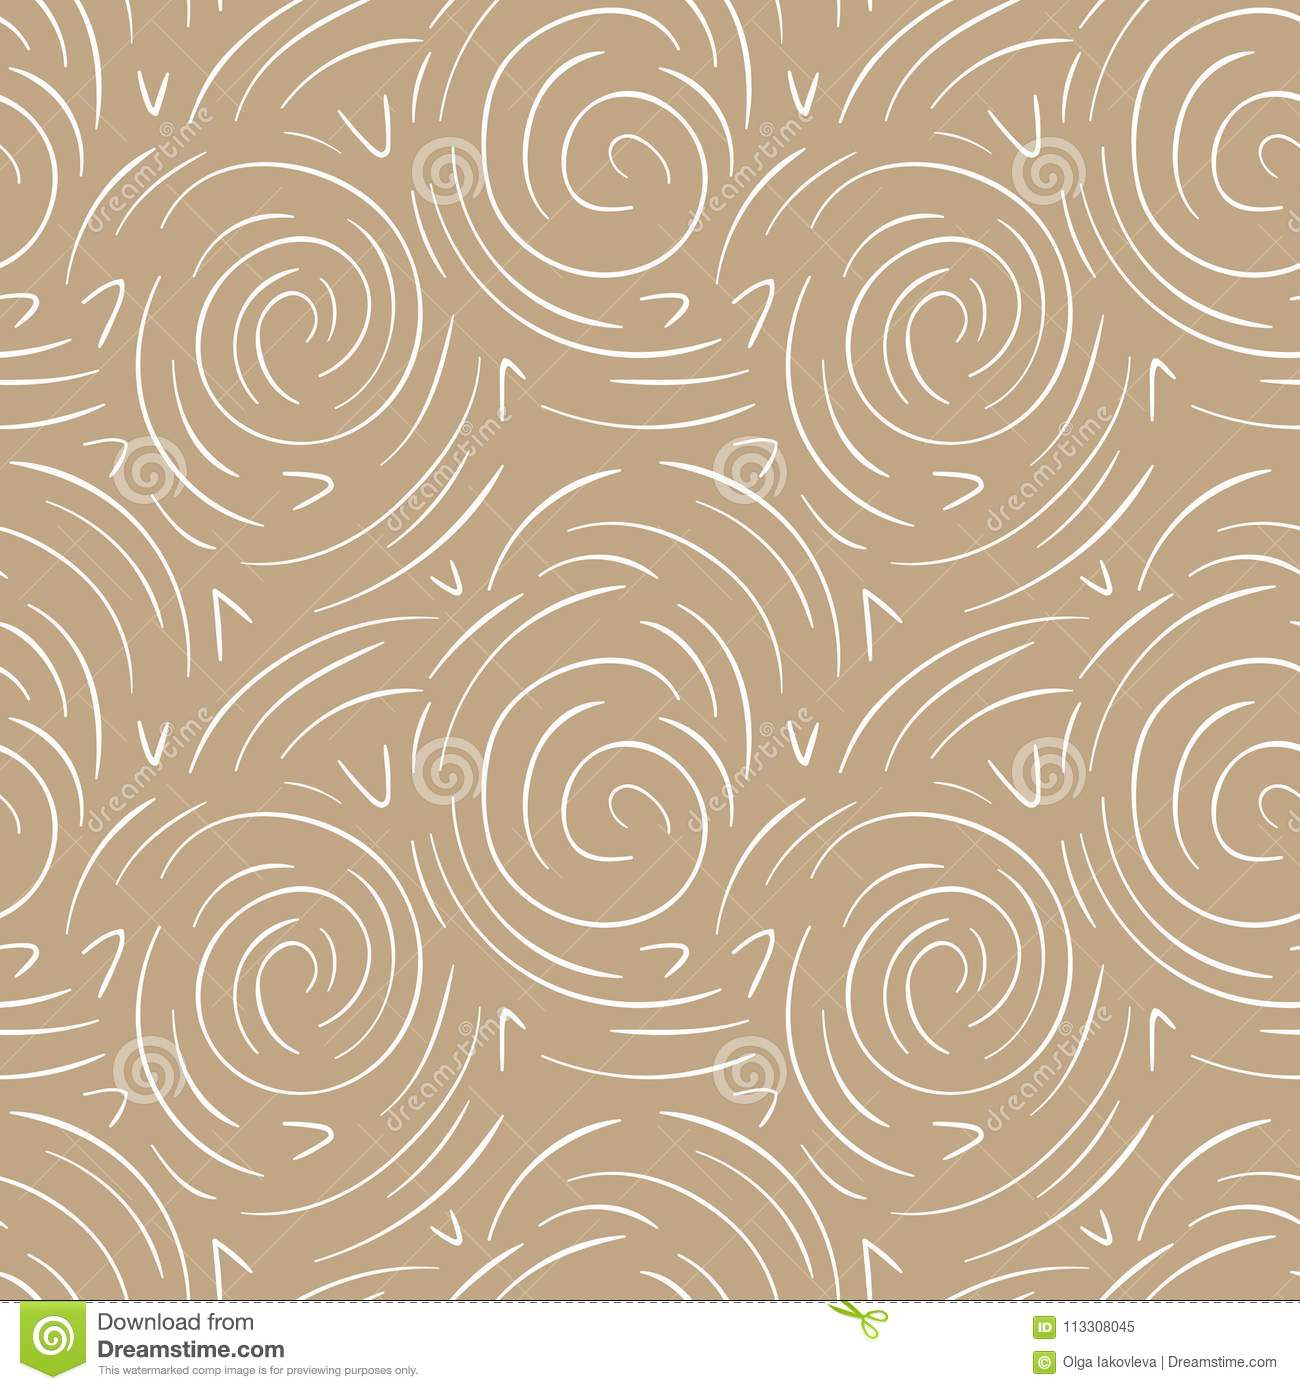 Round lines abstract vector seamless pattern. Modern gold and white background